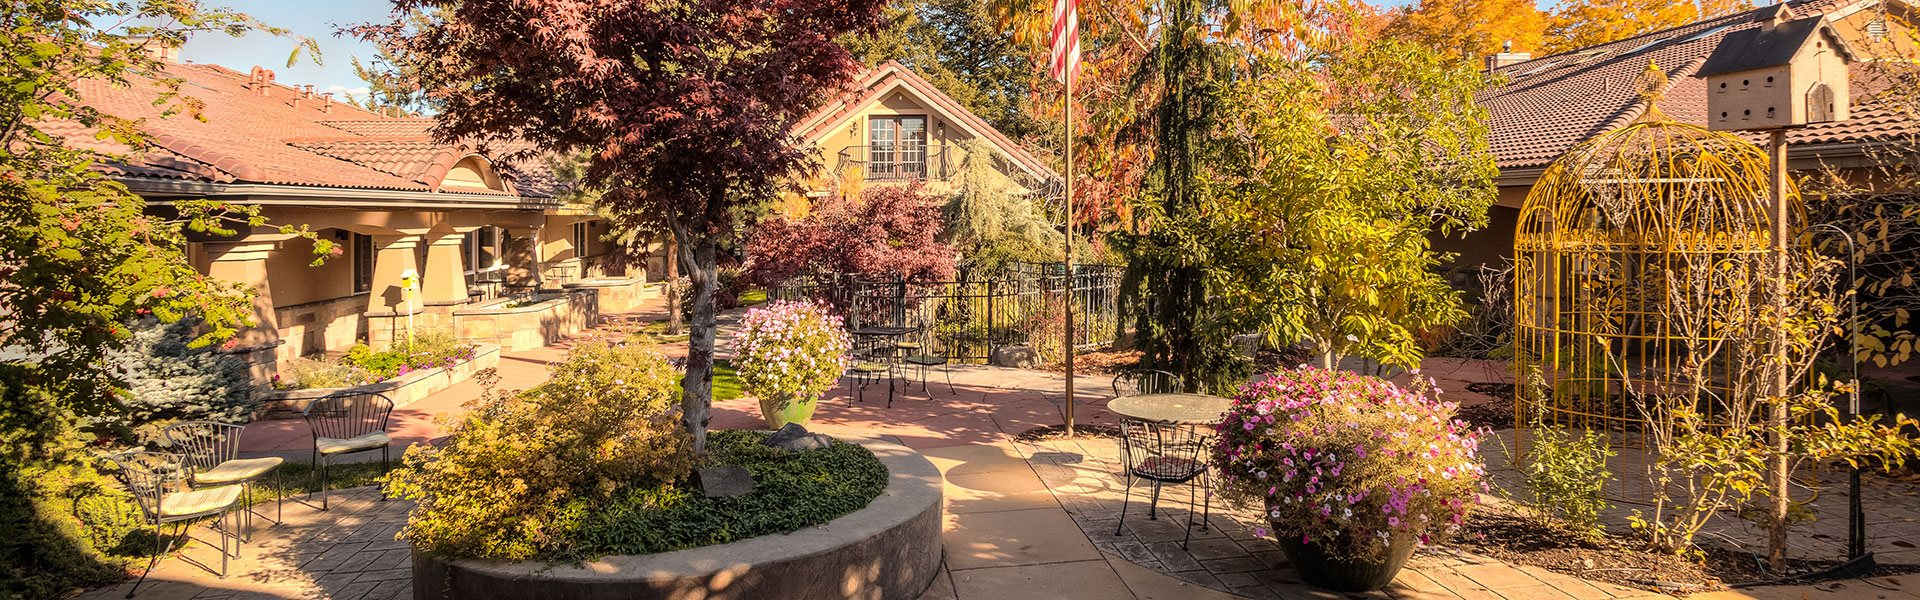 Beautiful Garden Setting at Courtyard at Coeur d'Alene, Idaho, 83814, Pacifica Senior Living